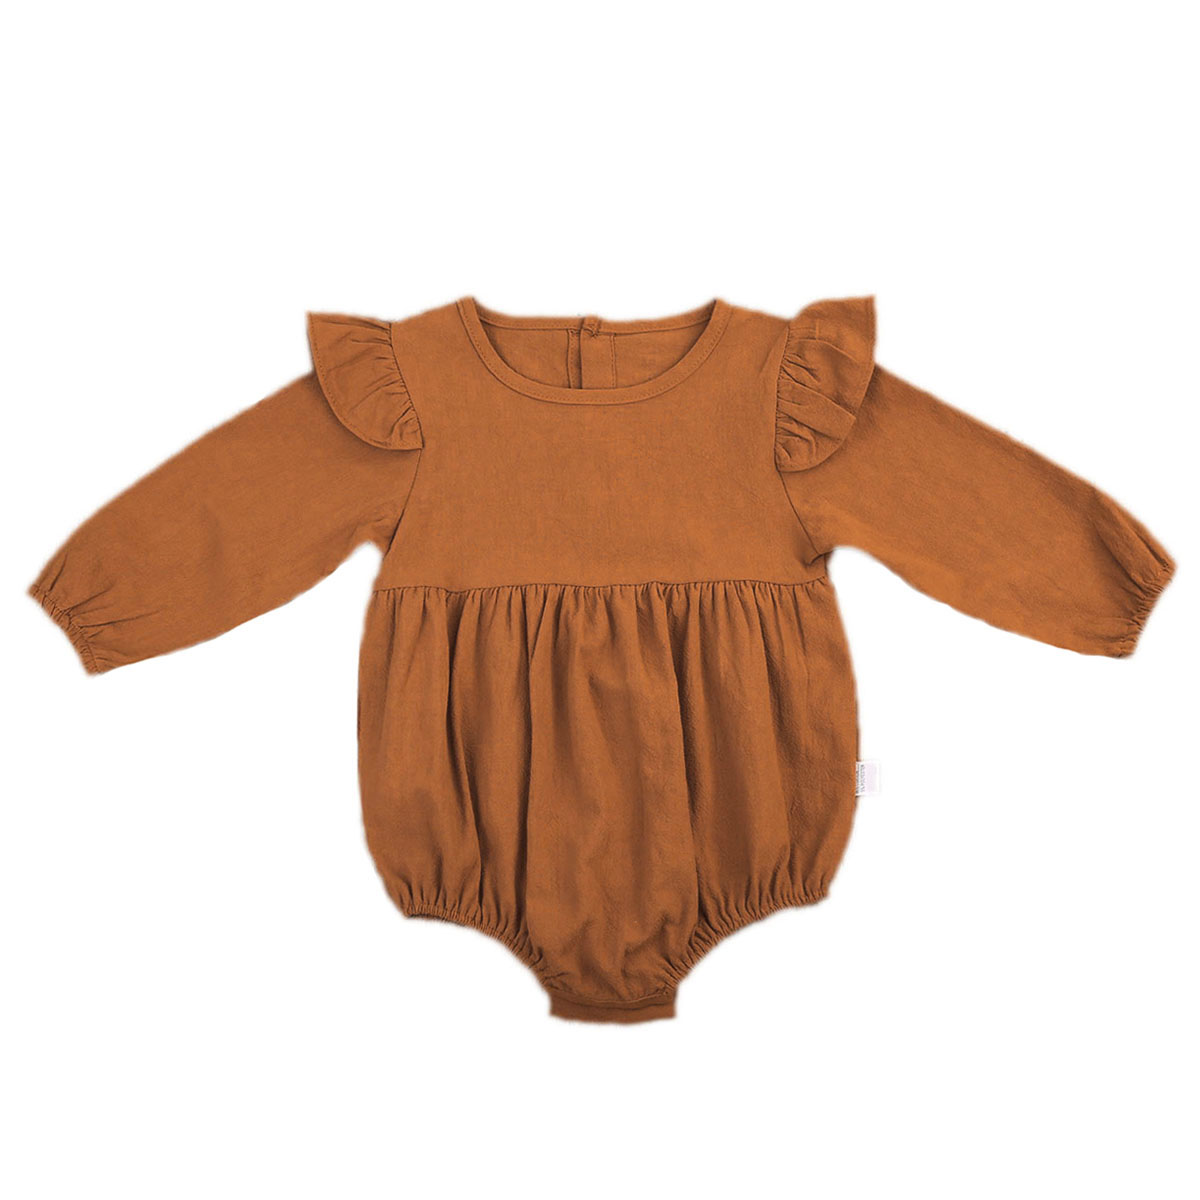 Newest Infant Baby Girl Clothing Long Sleeve Outfits Bodysuits Toddler Kids Playsuit Clothing Baby Girls toddler baby girls romper jumpsuit playsuit infant headband clothes outfits set sleeve clothing children autumn summer